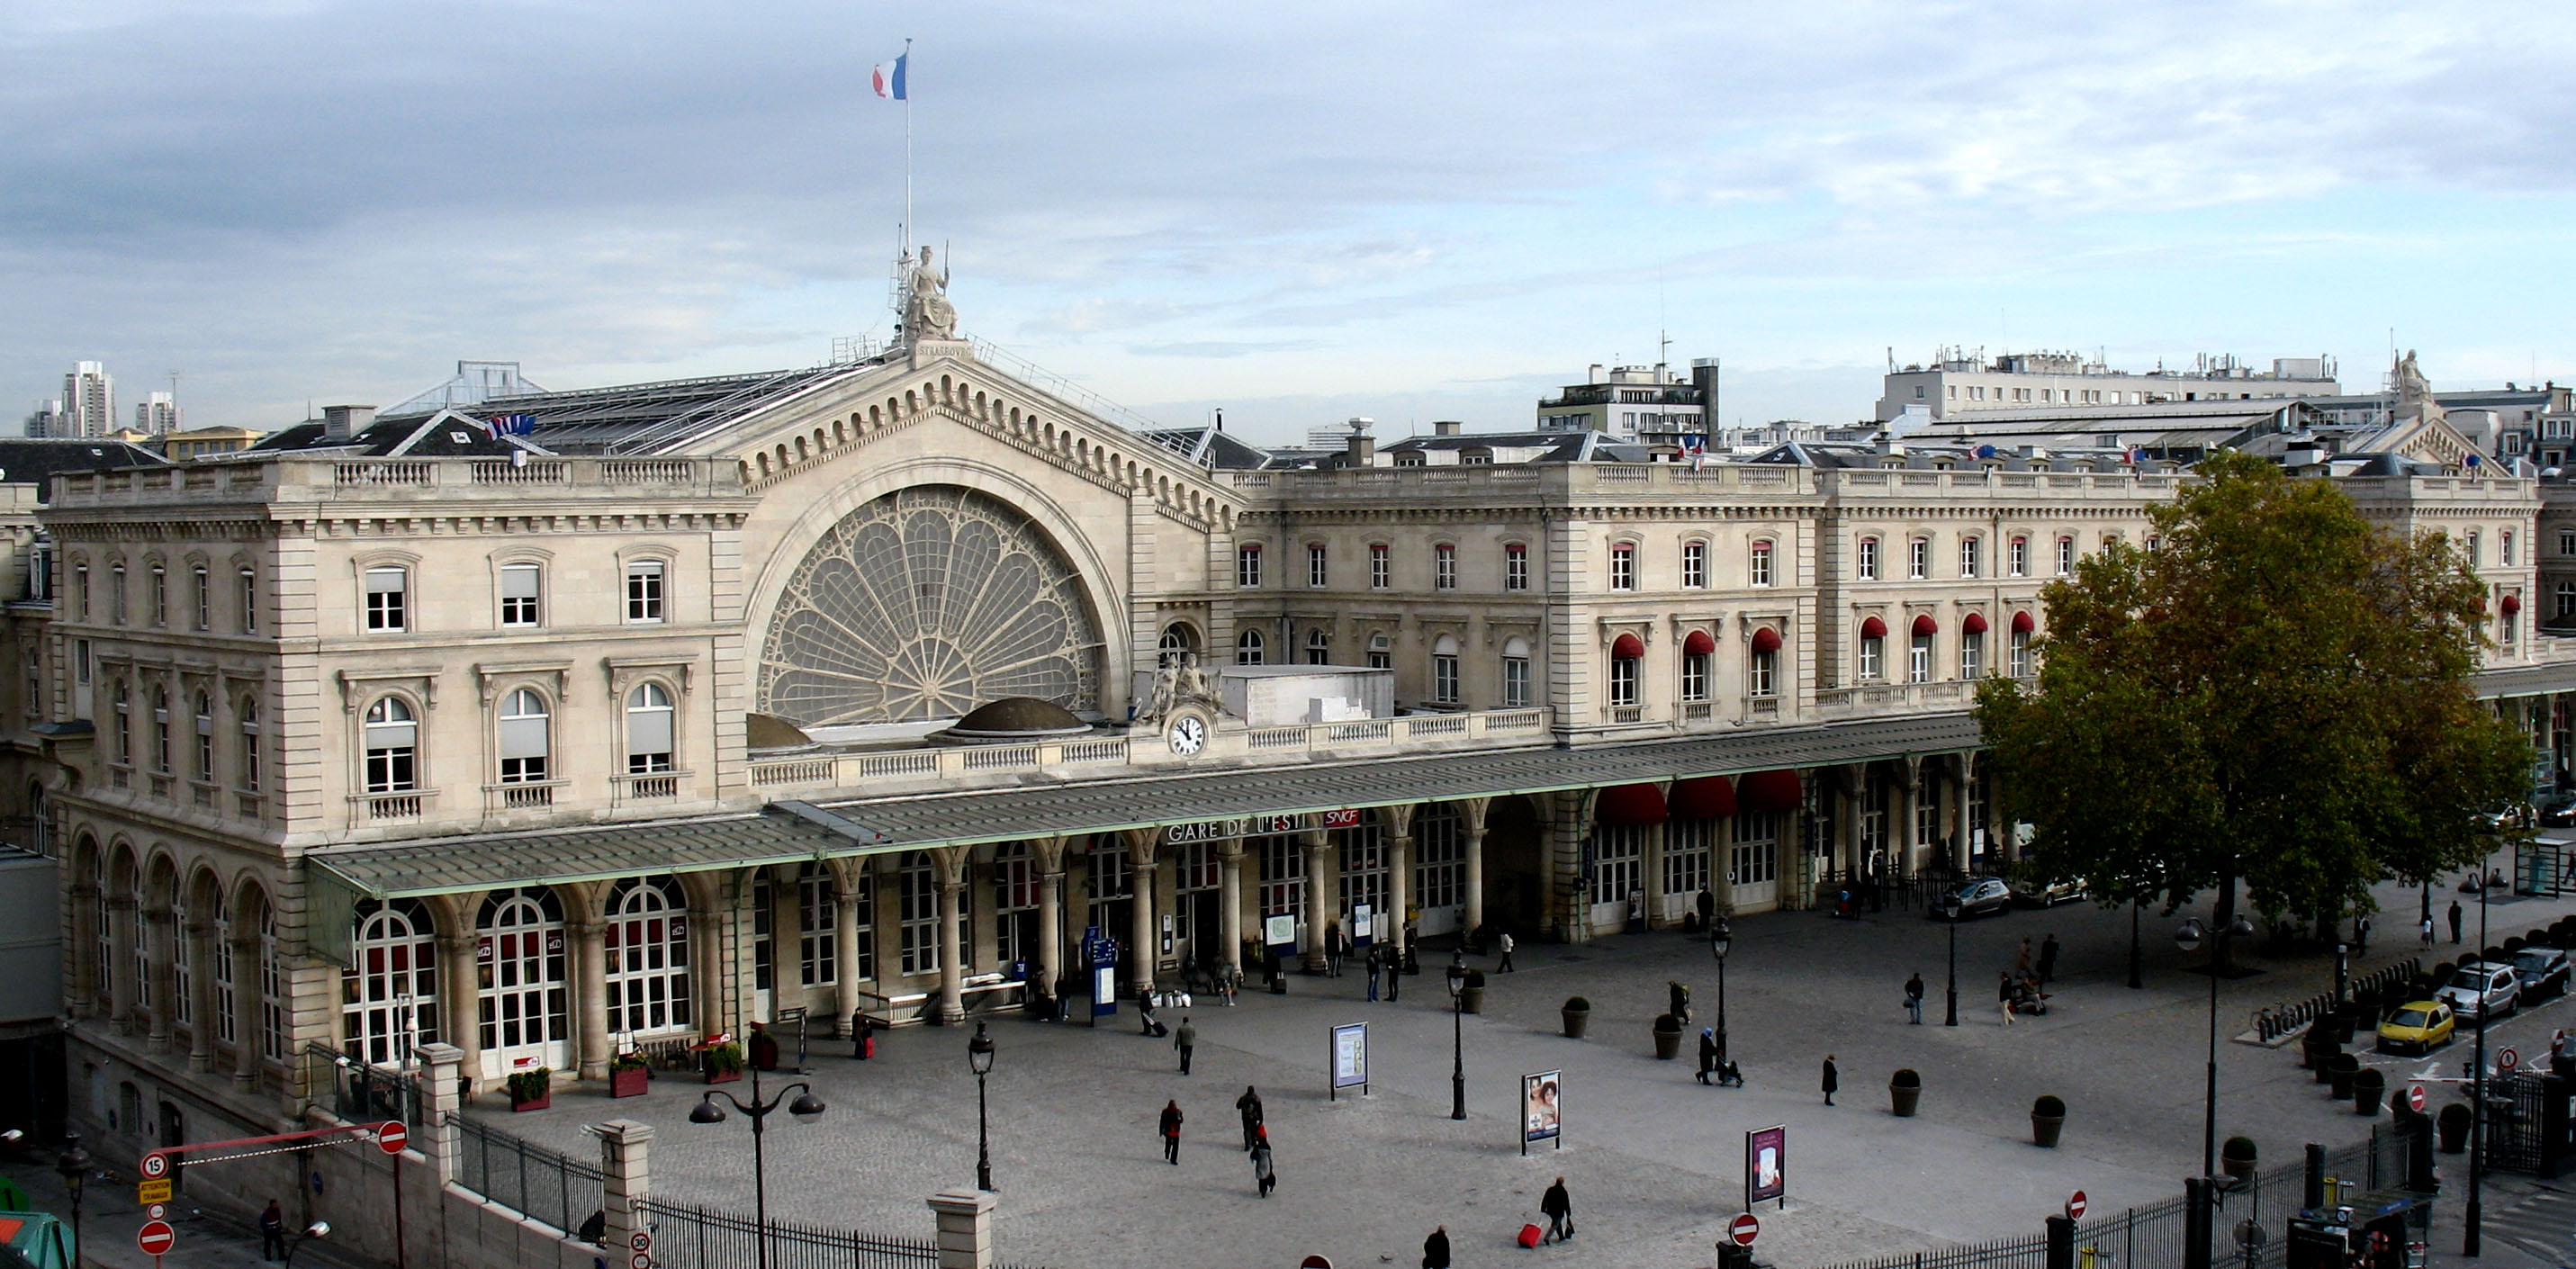 Paris-Gare-de-l-Est-train-station